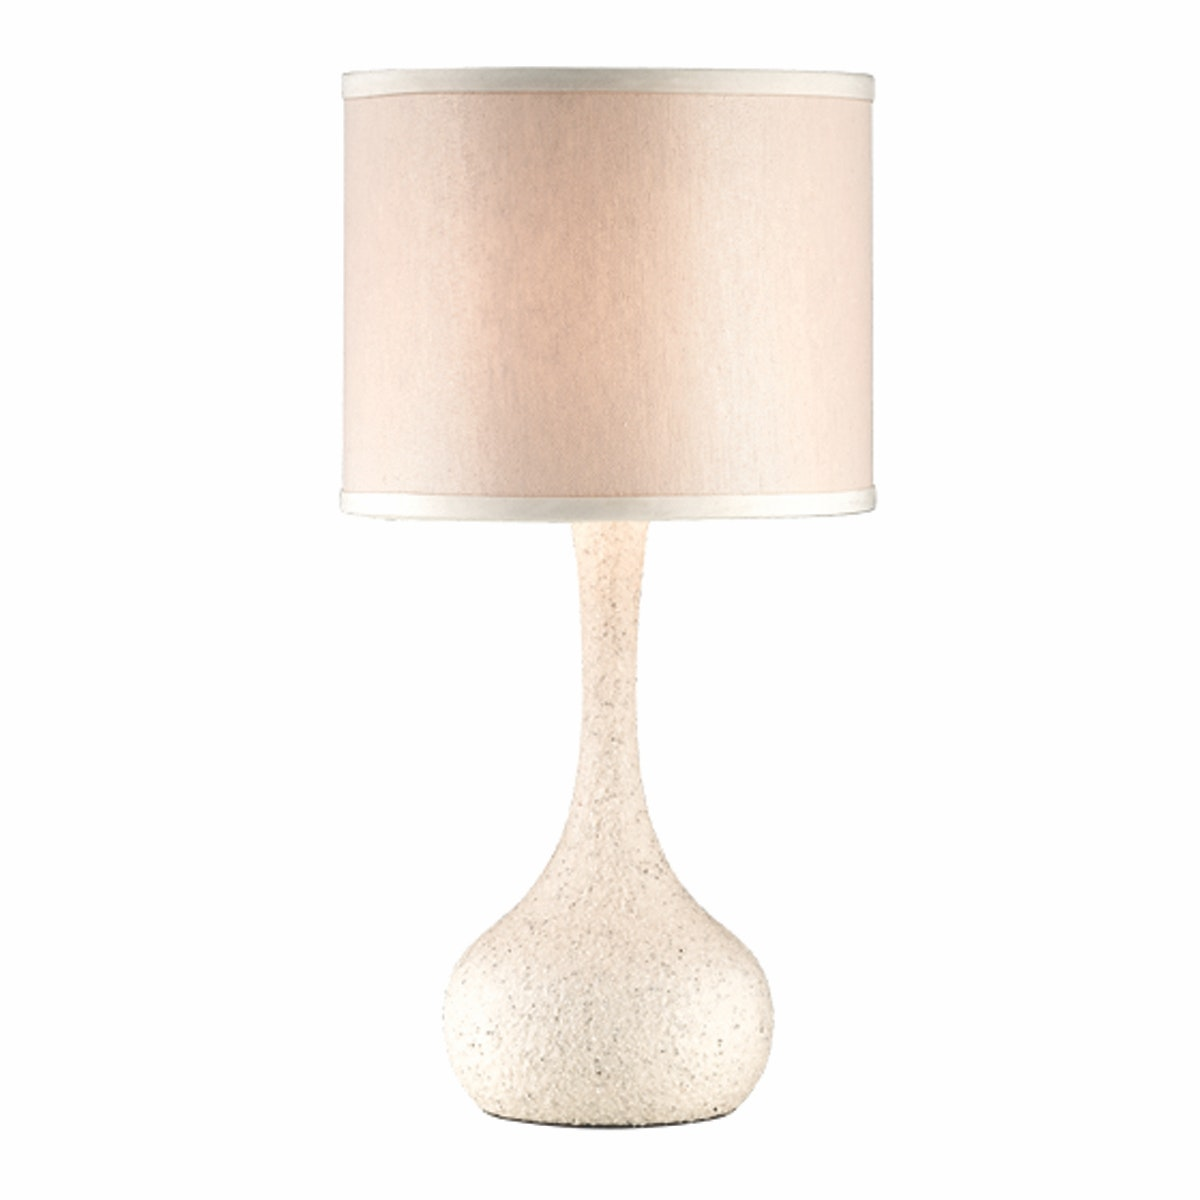 3+PROJECTS Lampu Meja Table Lamp Beige Fabric Shade 3+DL-PD1352-BE-VG